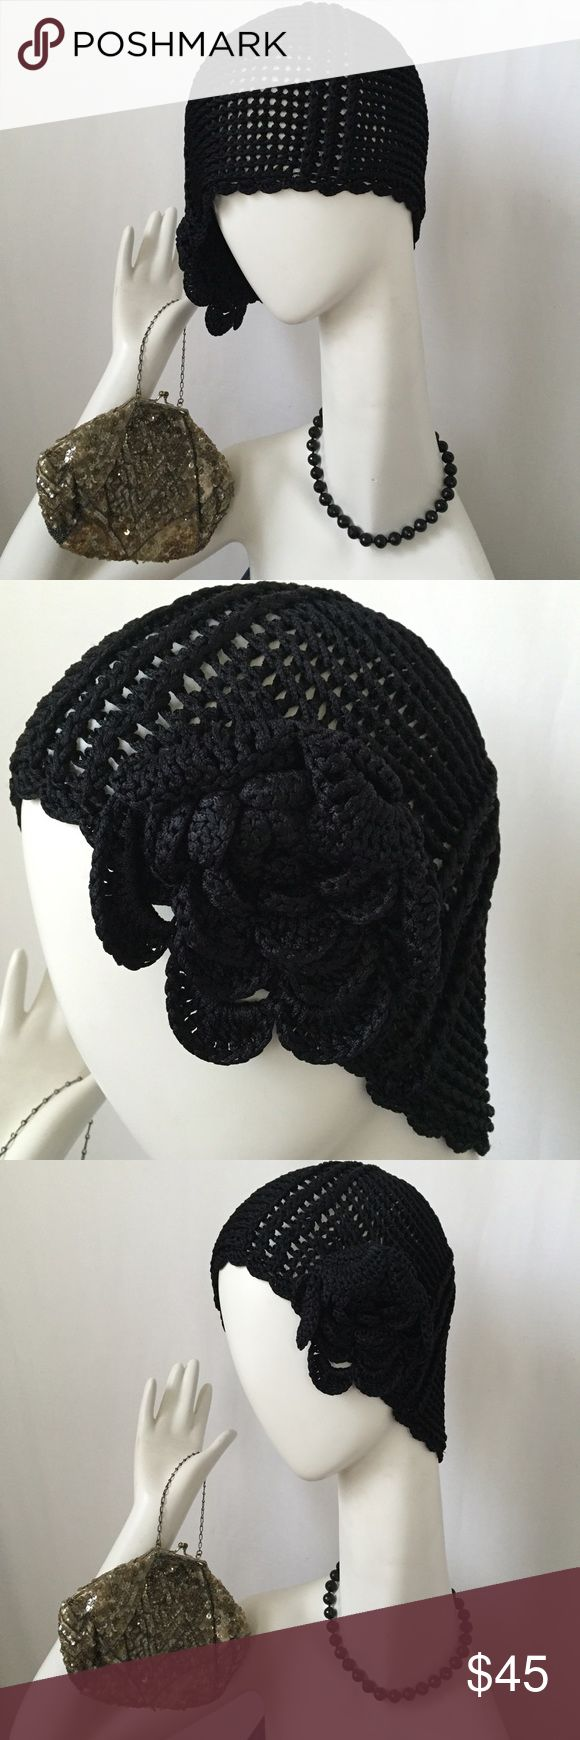 Ragtime Style Black Skull Cap w/Large Flower EUC Ragtime Style Black Skull Cap w/Large Flower ▪crochet style ▪️️there are no tags & the material has a very silky slinky feel to it-it is not standard yarn▪️purchased in England ️ can be worn various ways FIRM Accessories Hats